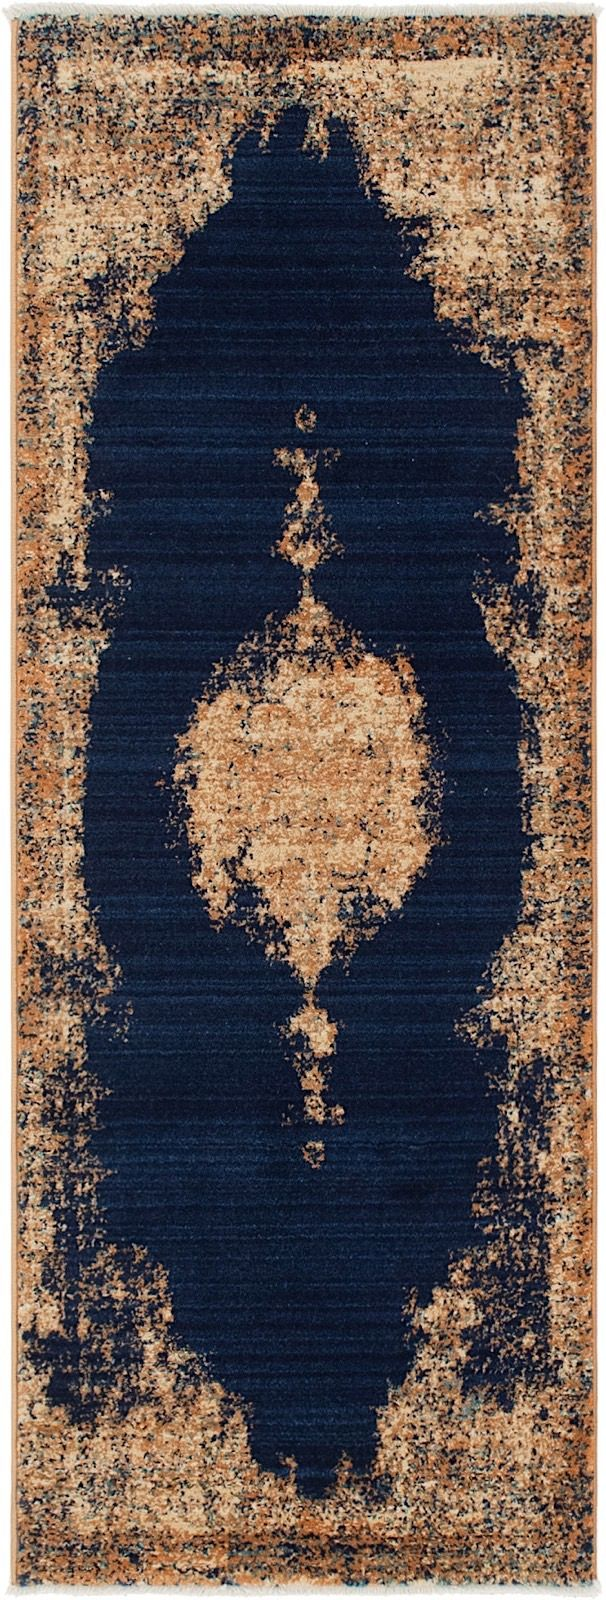 garth traditional area rug collection